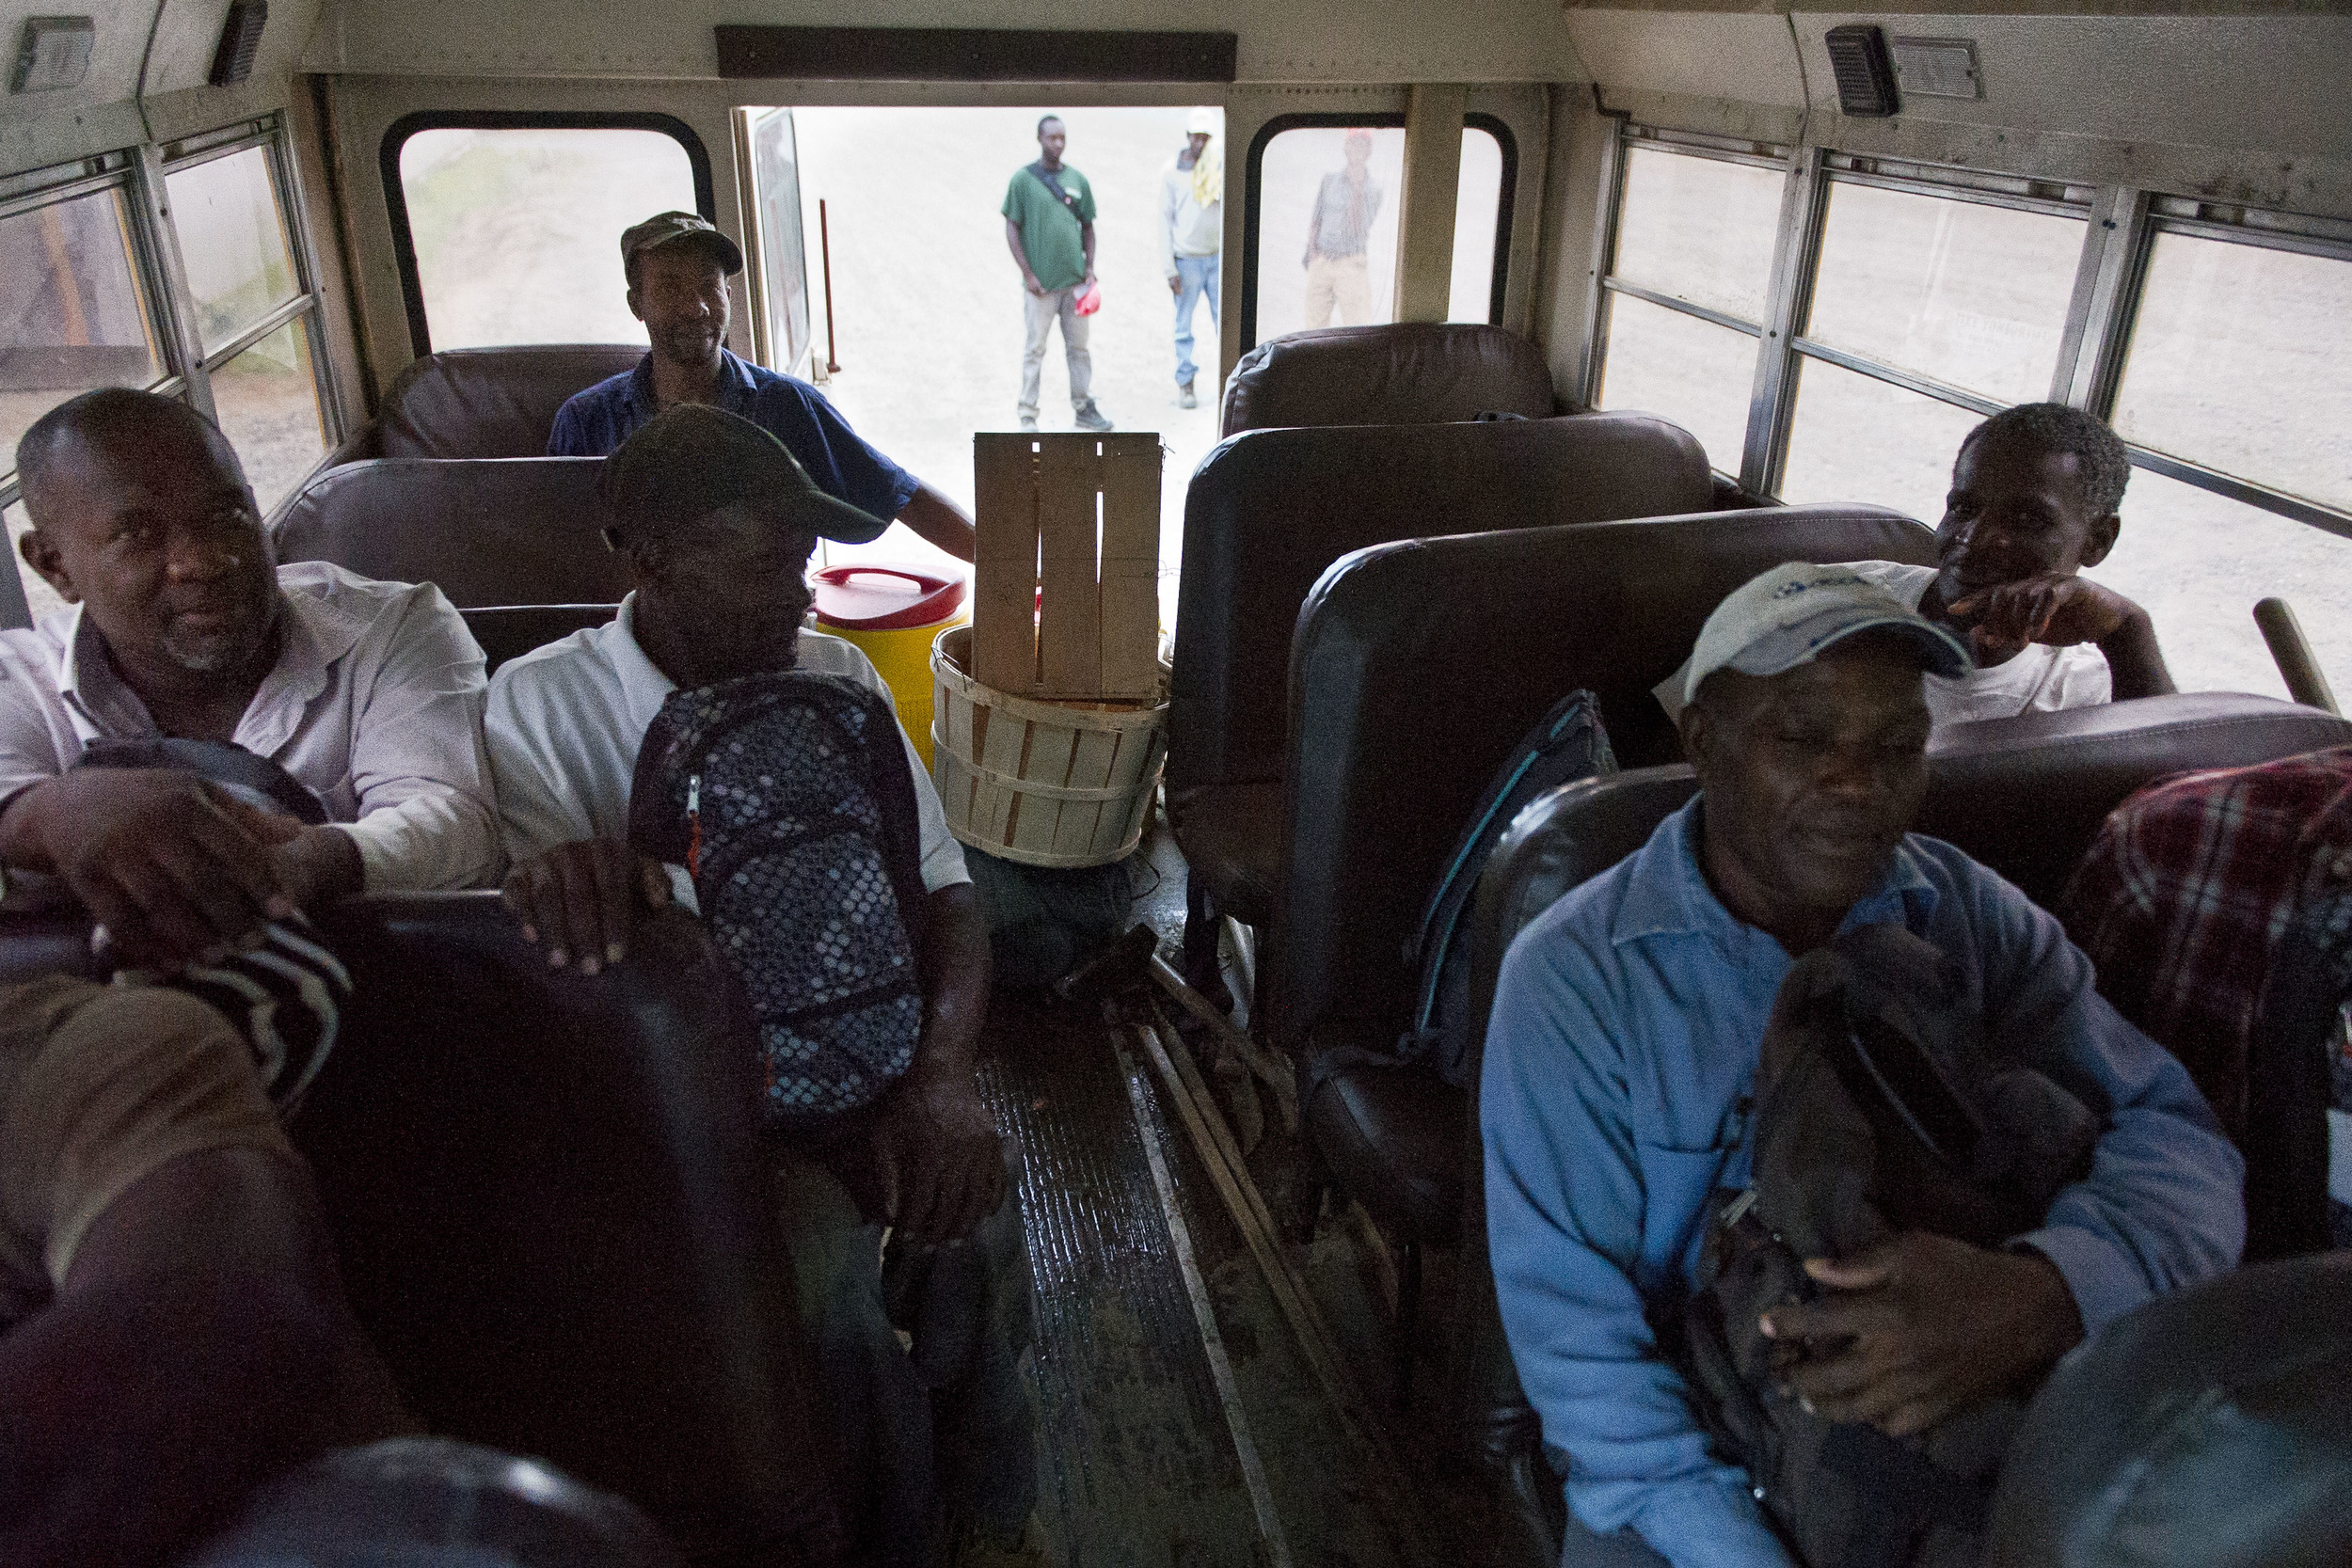 Western Massachusetts migrant workers wait to be bused to area farms for the work day.